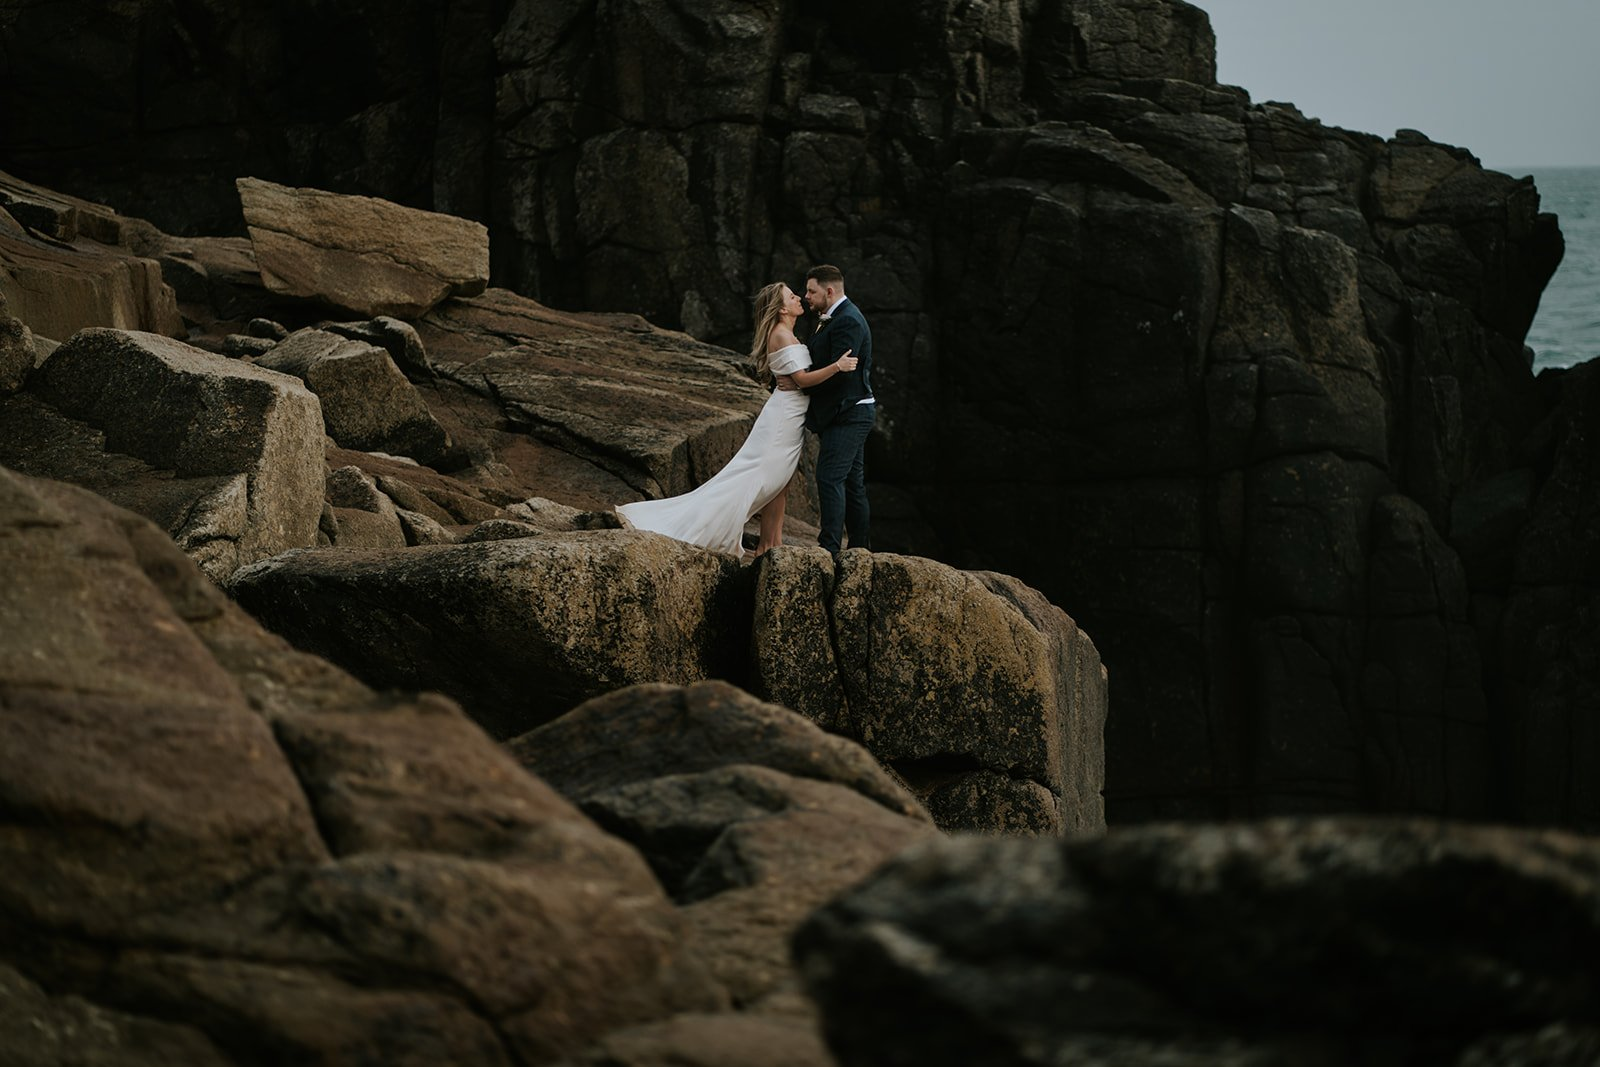 Couple kiss wildly on the rugged cliffs during a storm as huge waves crash below them